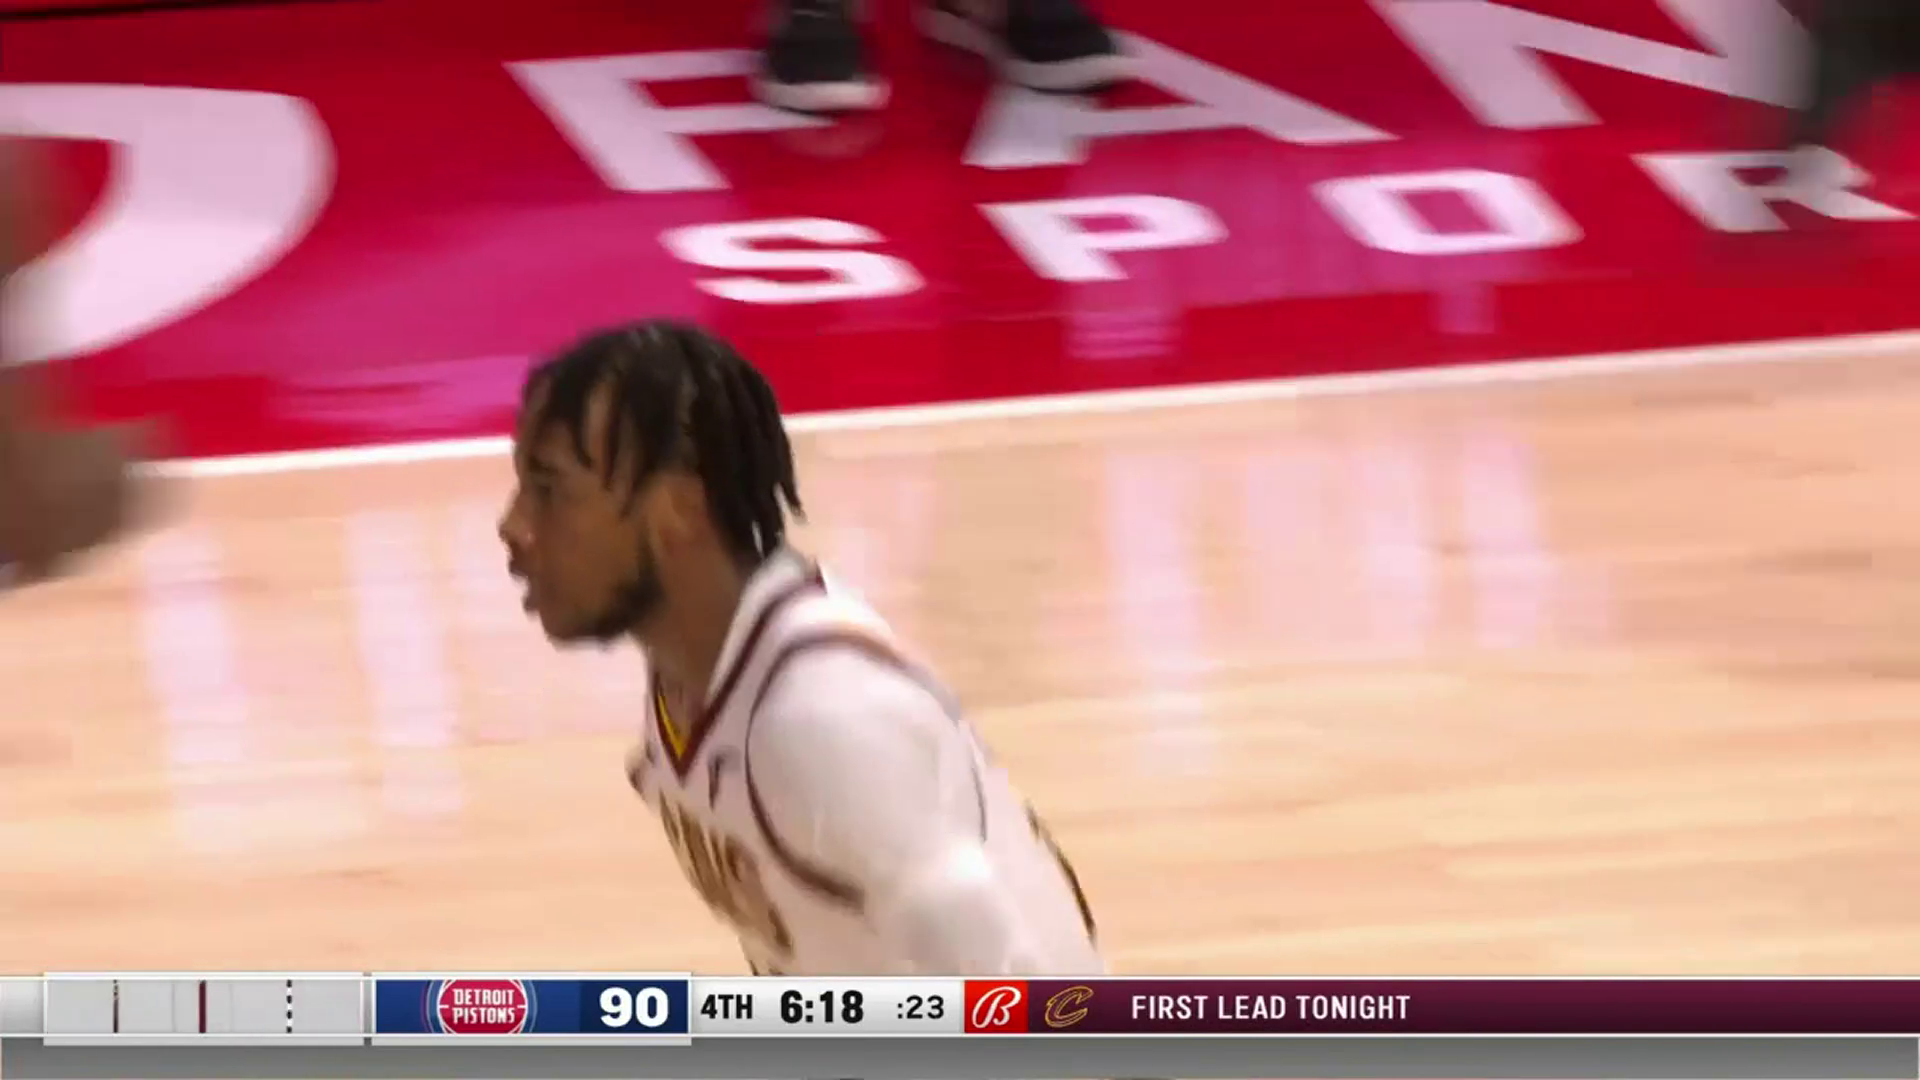 Garland for Three for the Lead